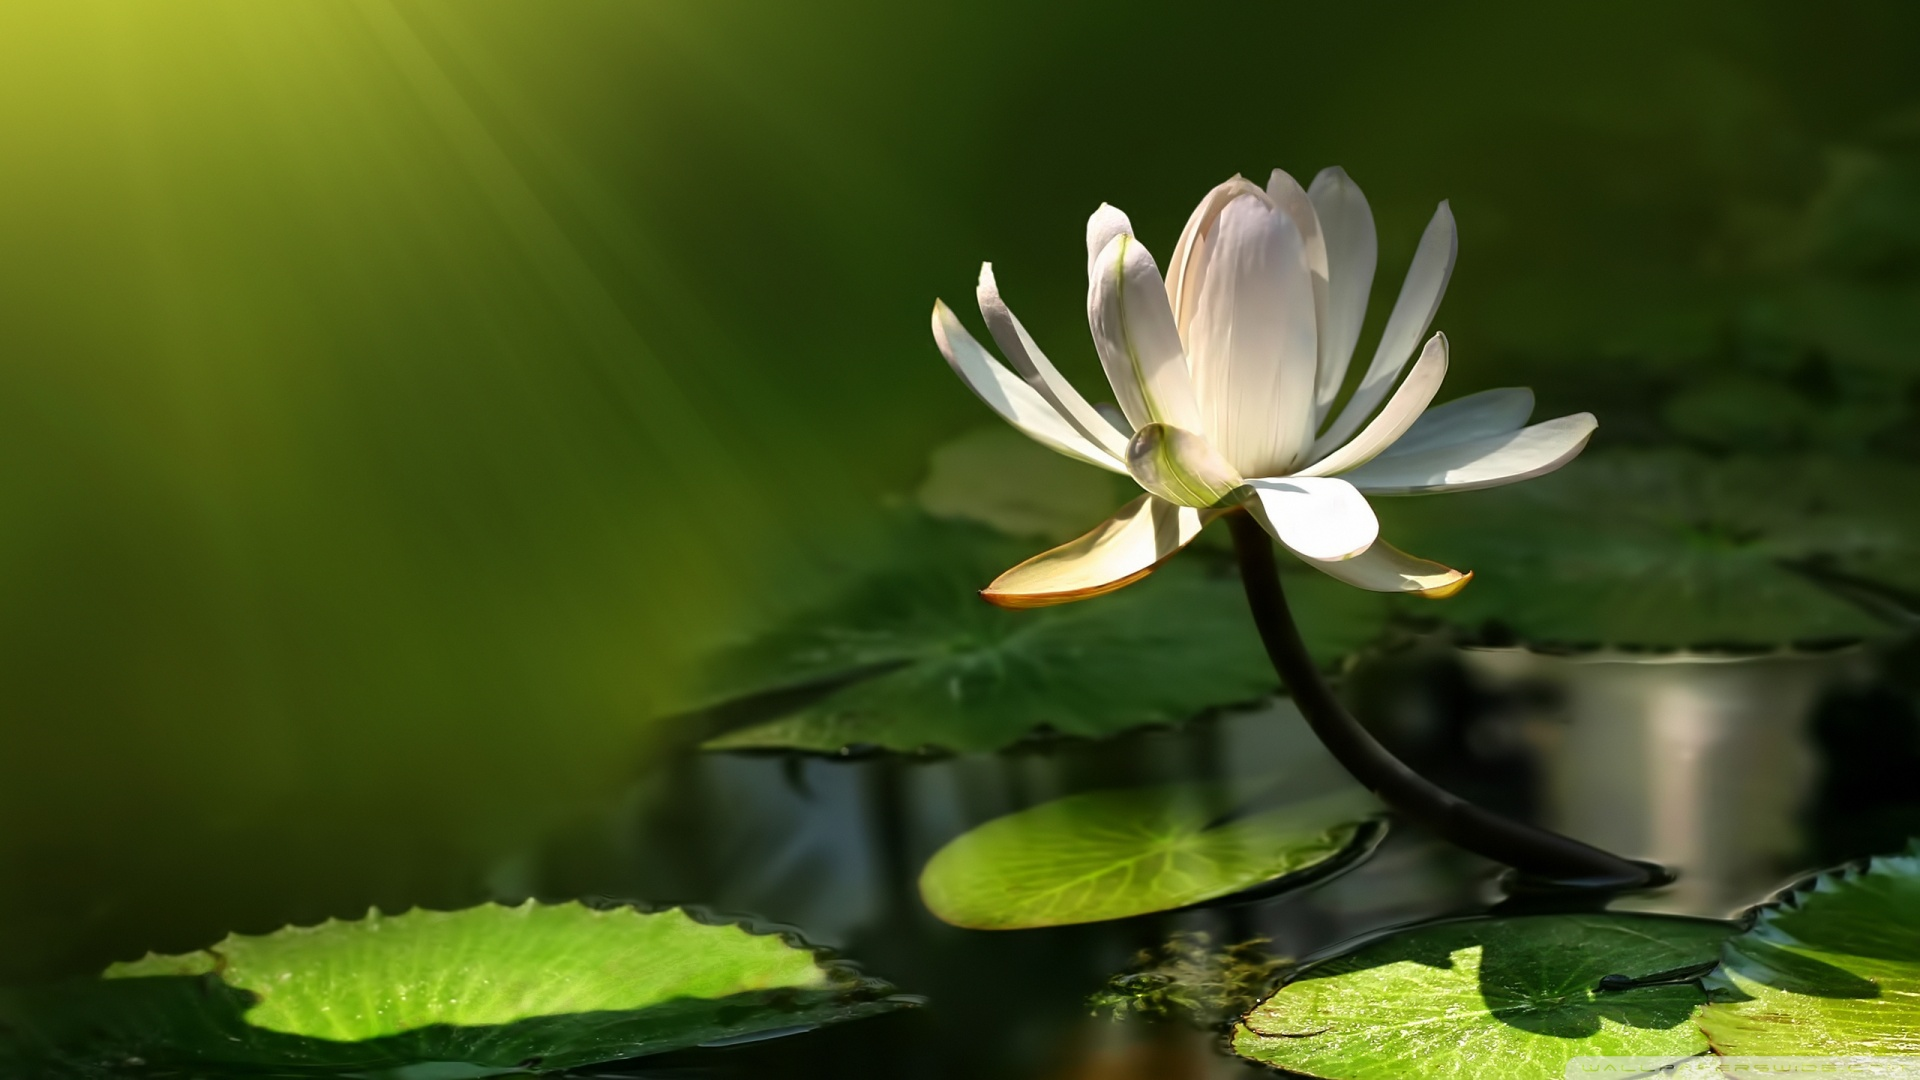 white_lotus_flower-wallpaper-1920x1080